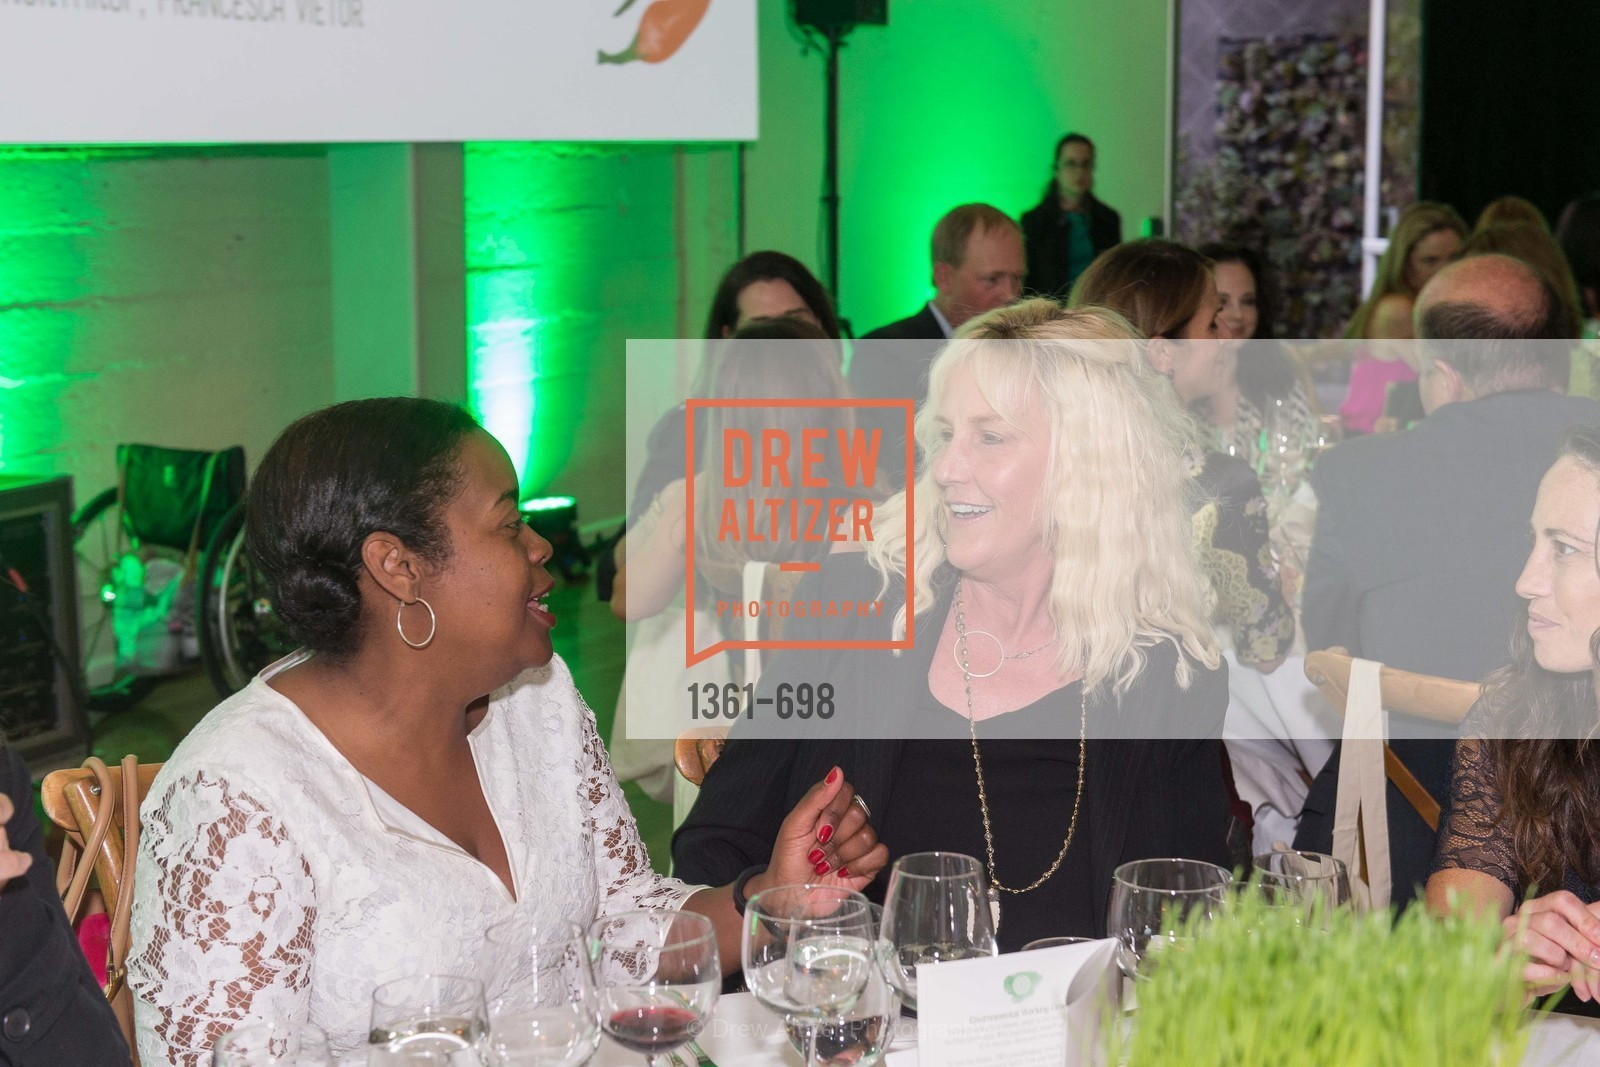 Chantal Walker, Erin Brockovich, EWG's 6th Annual Earth Dinner, US, May 6th, 2015,Drew Altizer, Drew Altizer Photography, full-service event agency, private events, San Francisco photographer, photographer California